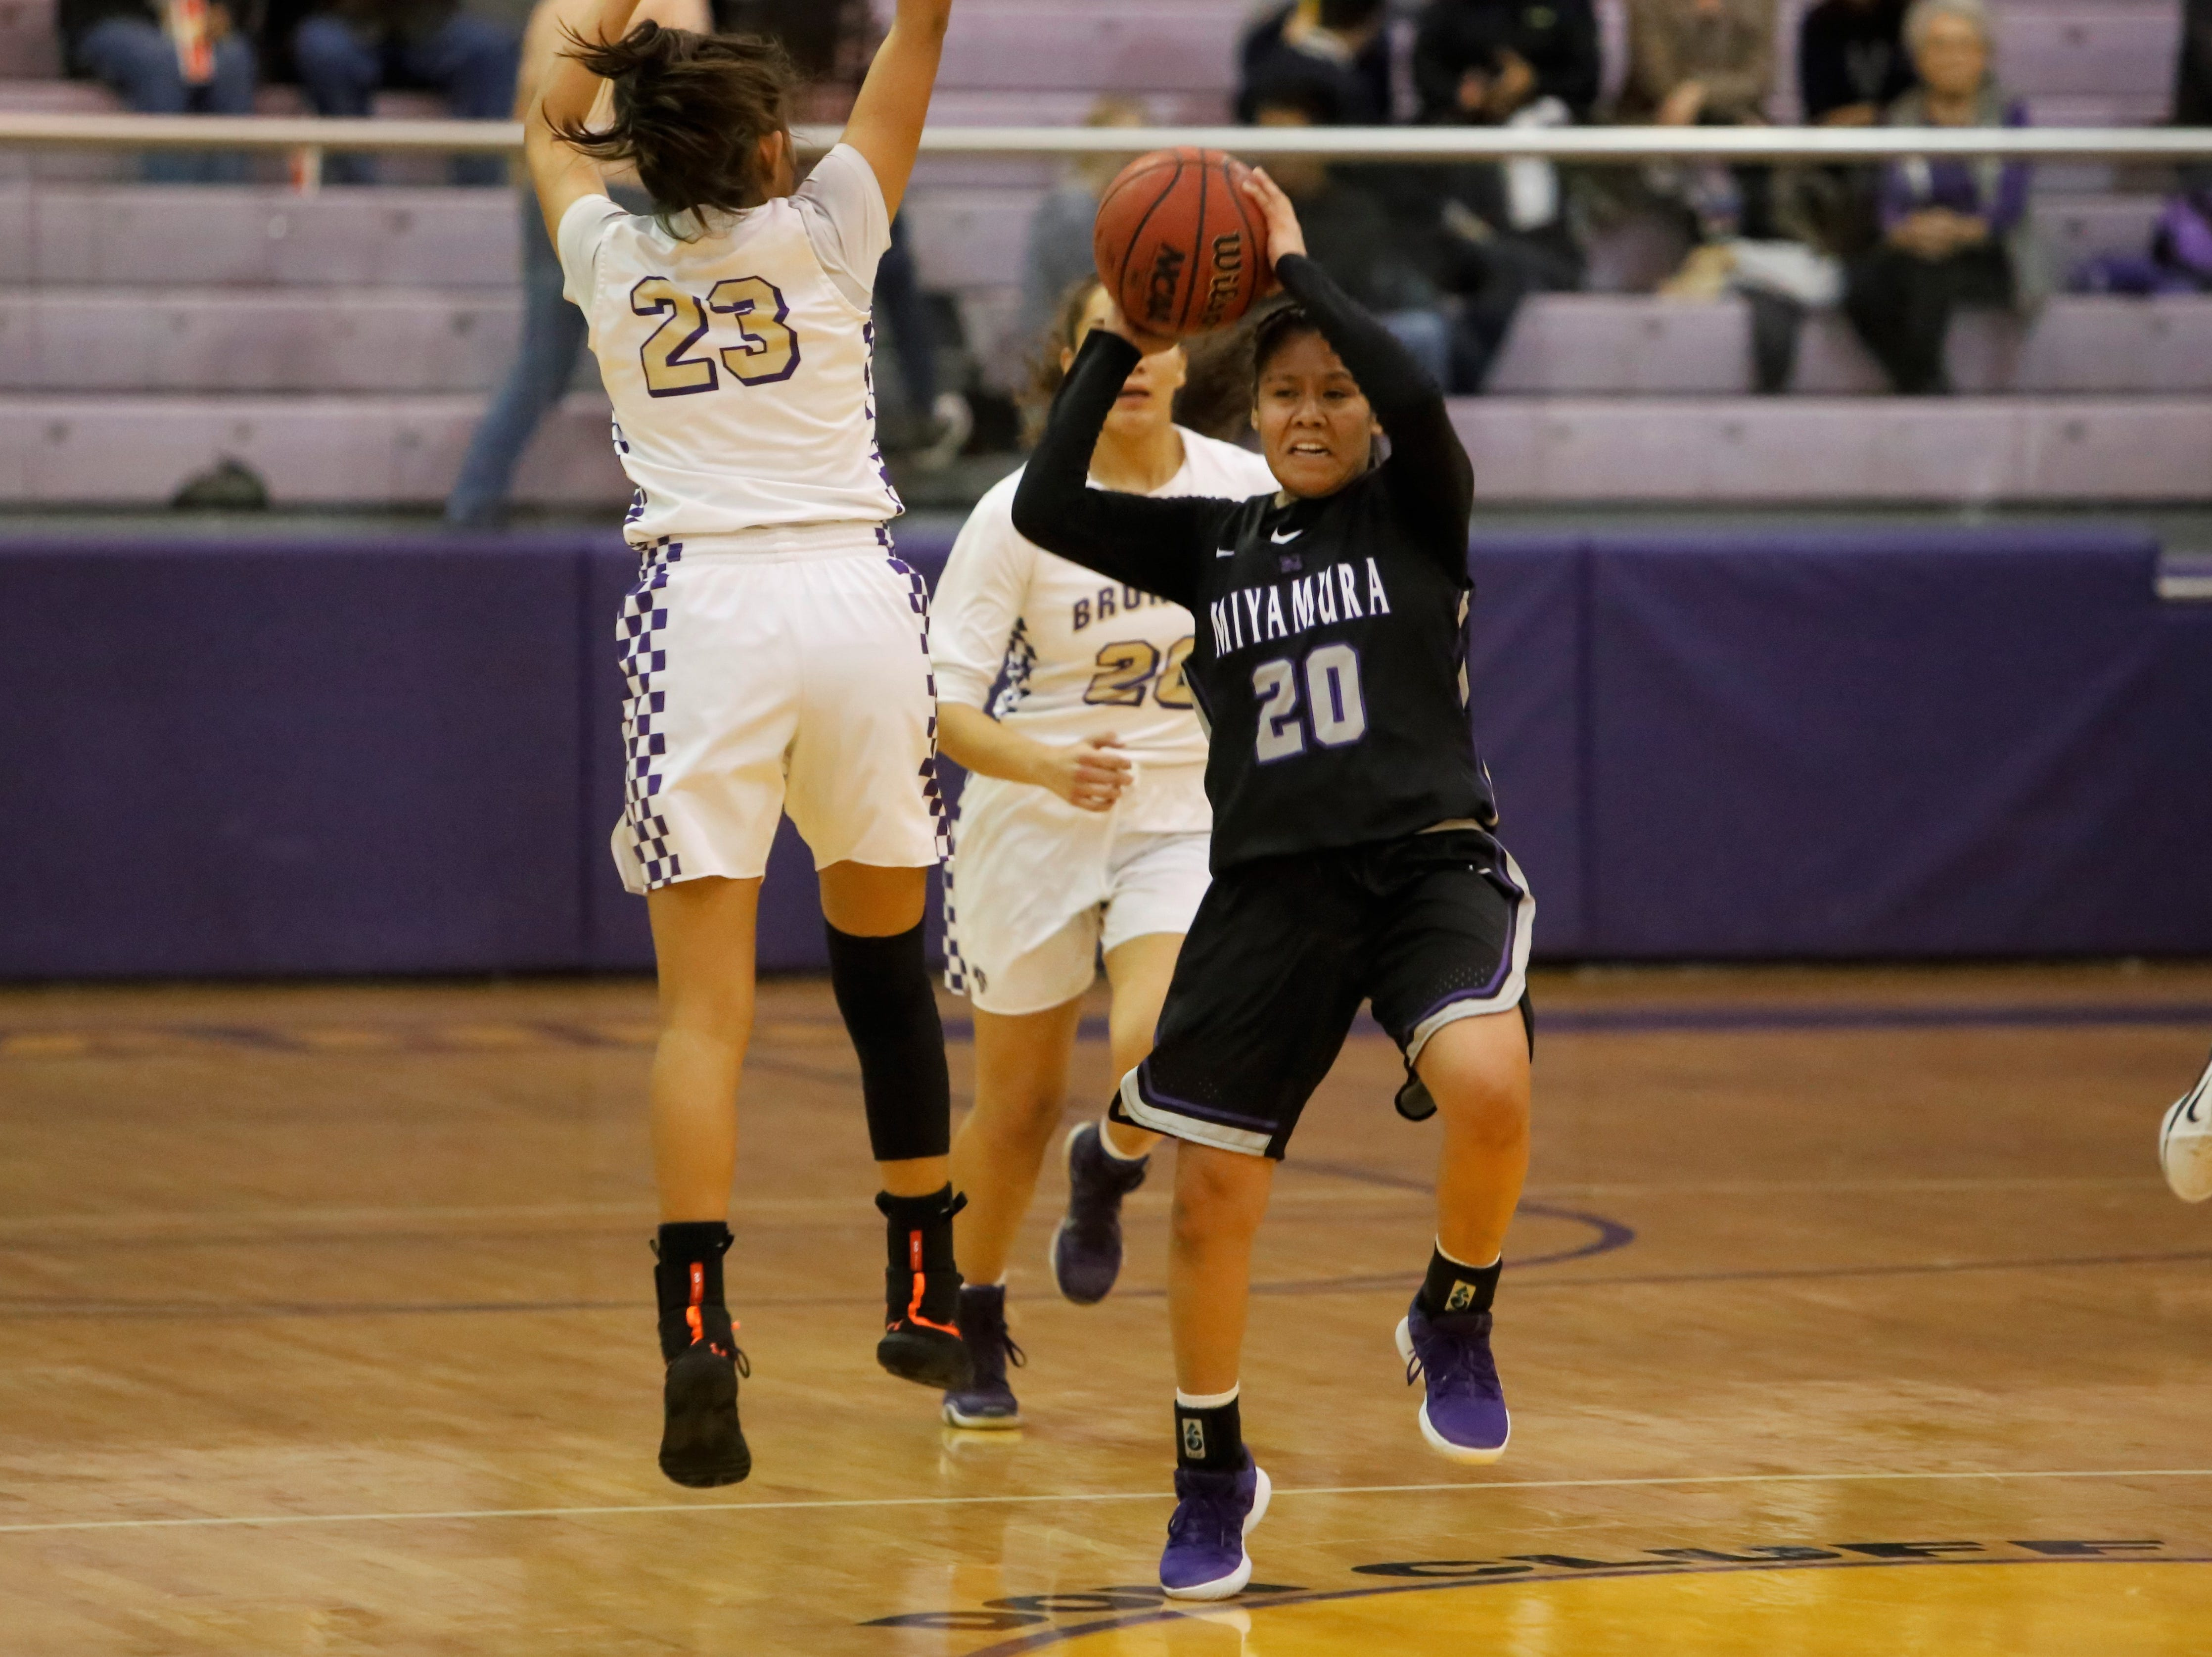 Miyamura's Noelle Charleston throws an outlet pass down the right side against Kirtland Central during Tuesday's District 1-4A game at Bronco Arena in Kirtland.